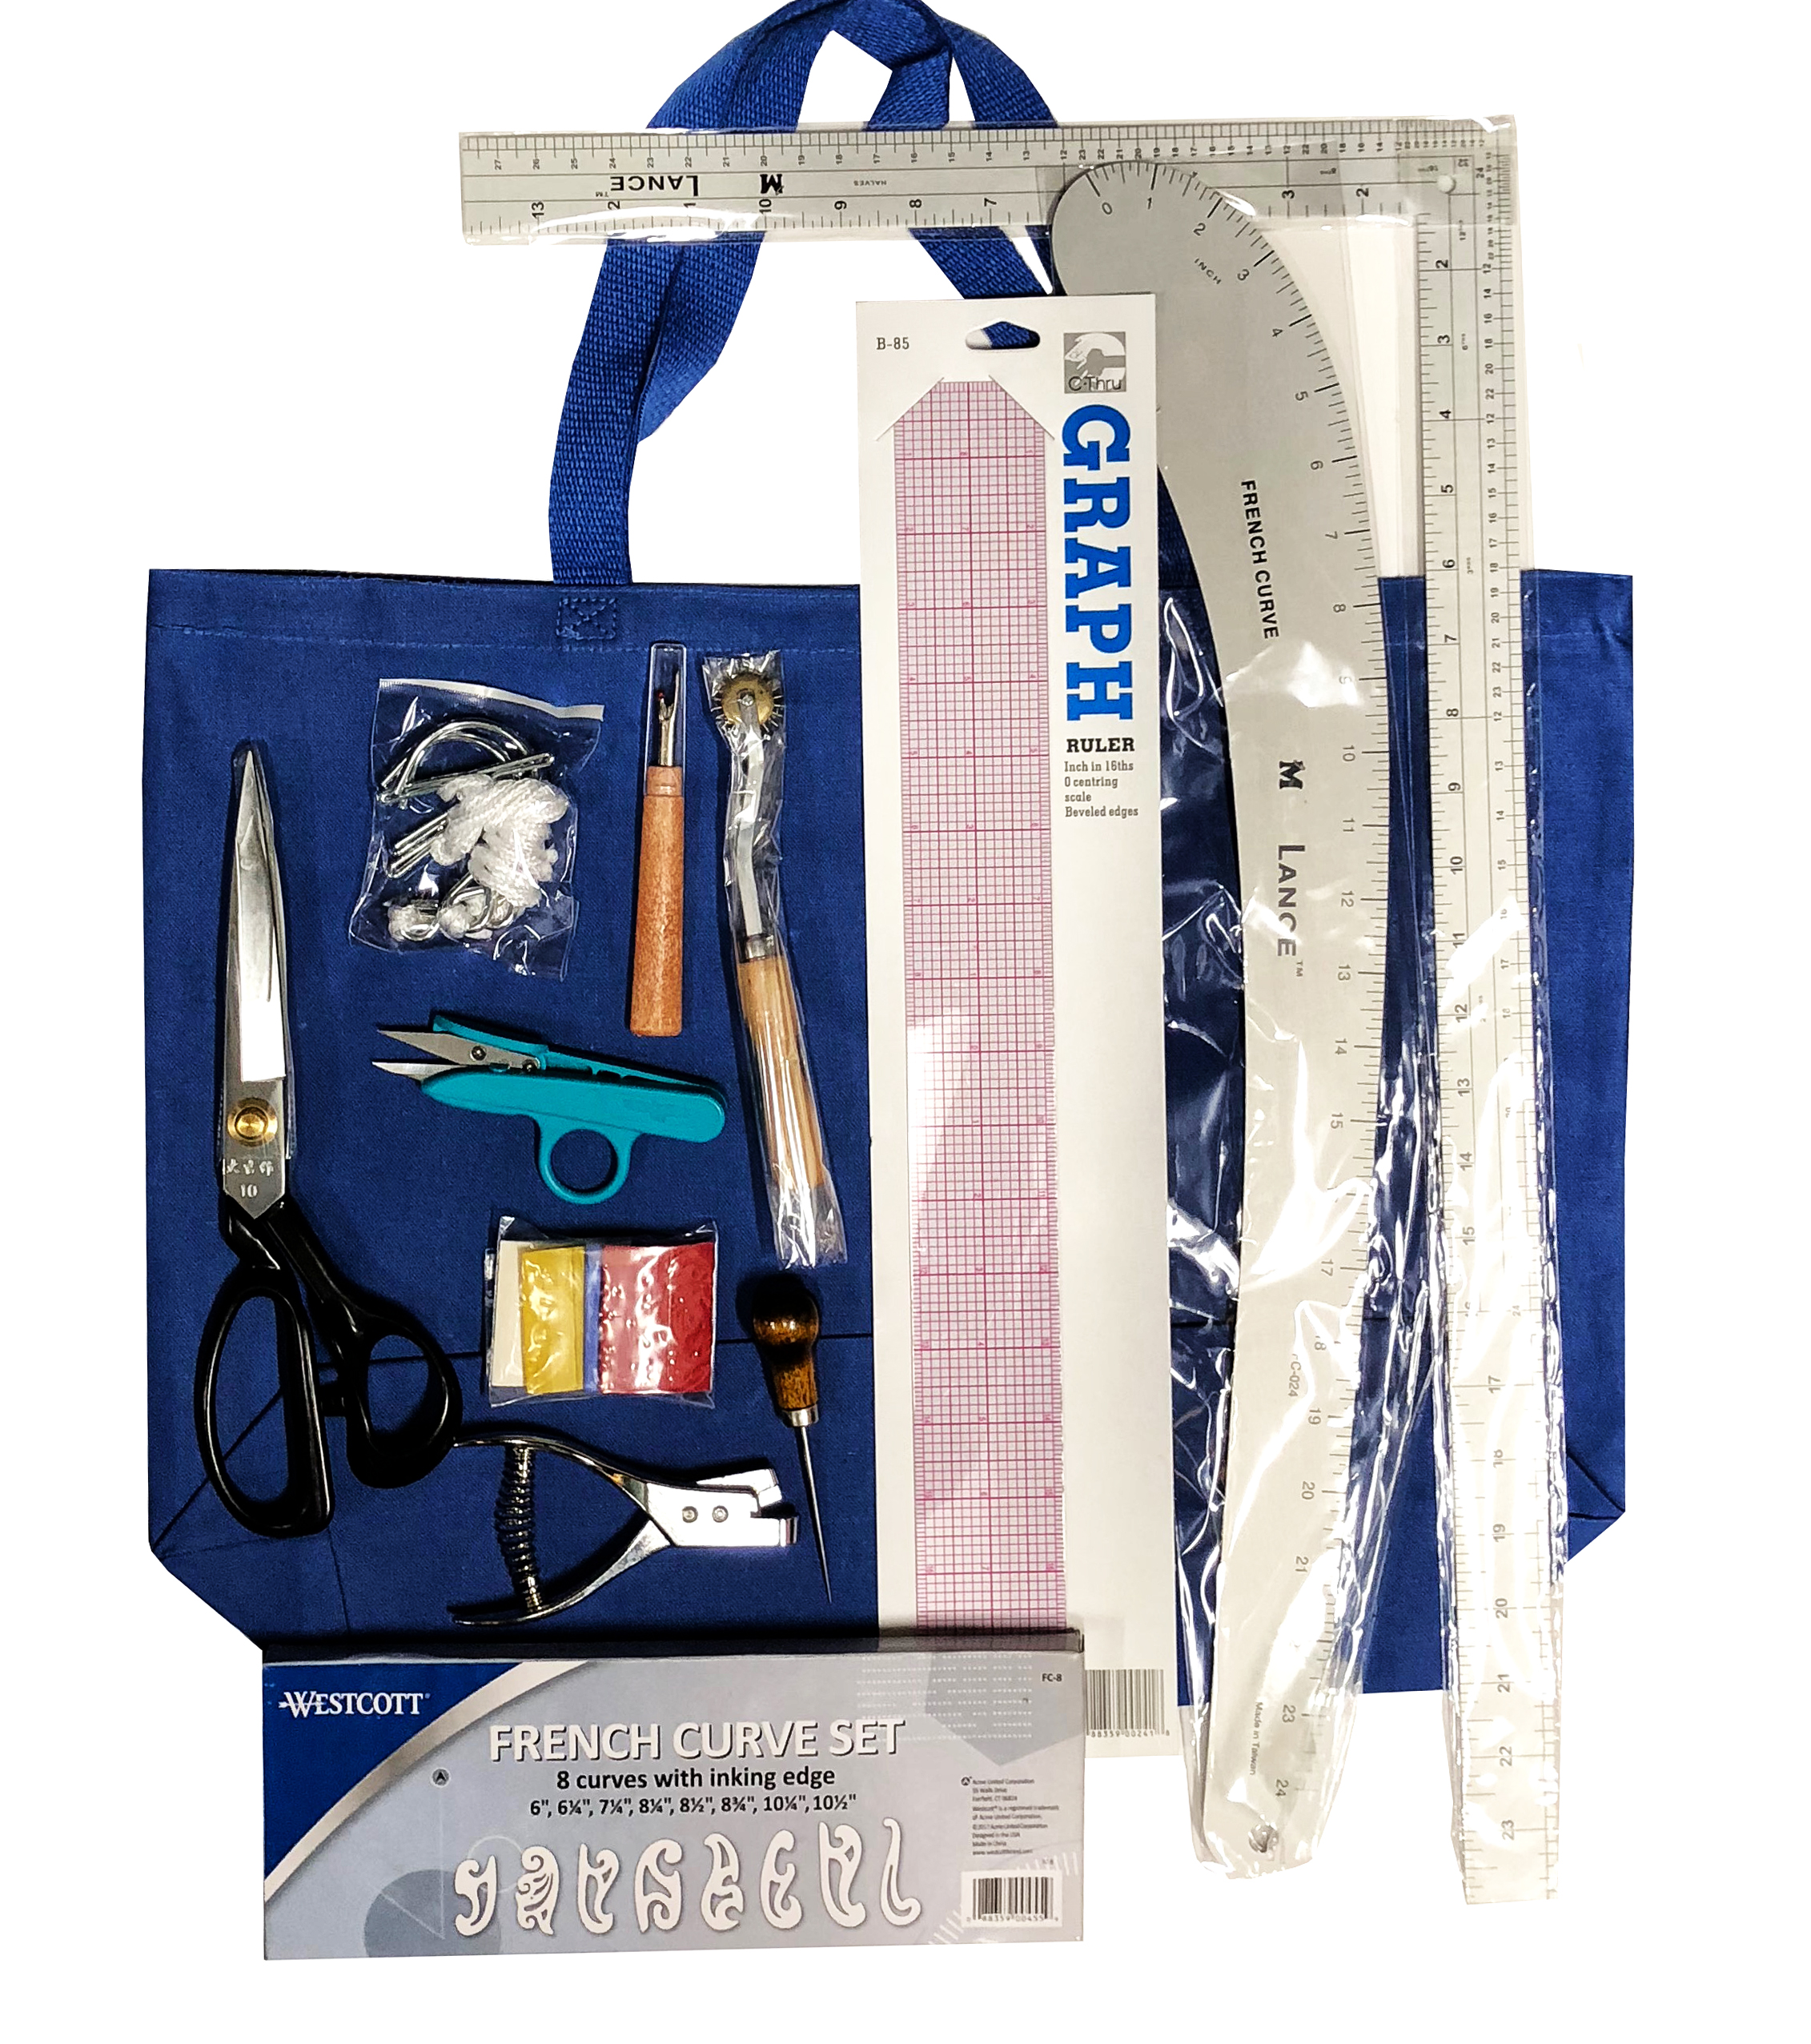 Toolkit 3150 - Pattern Making Supplies